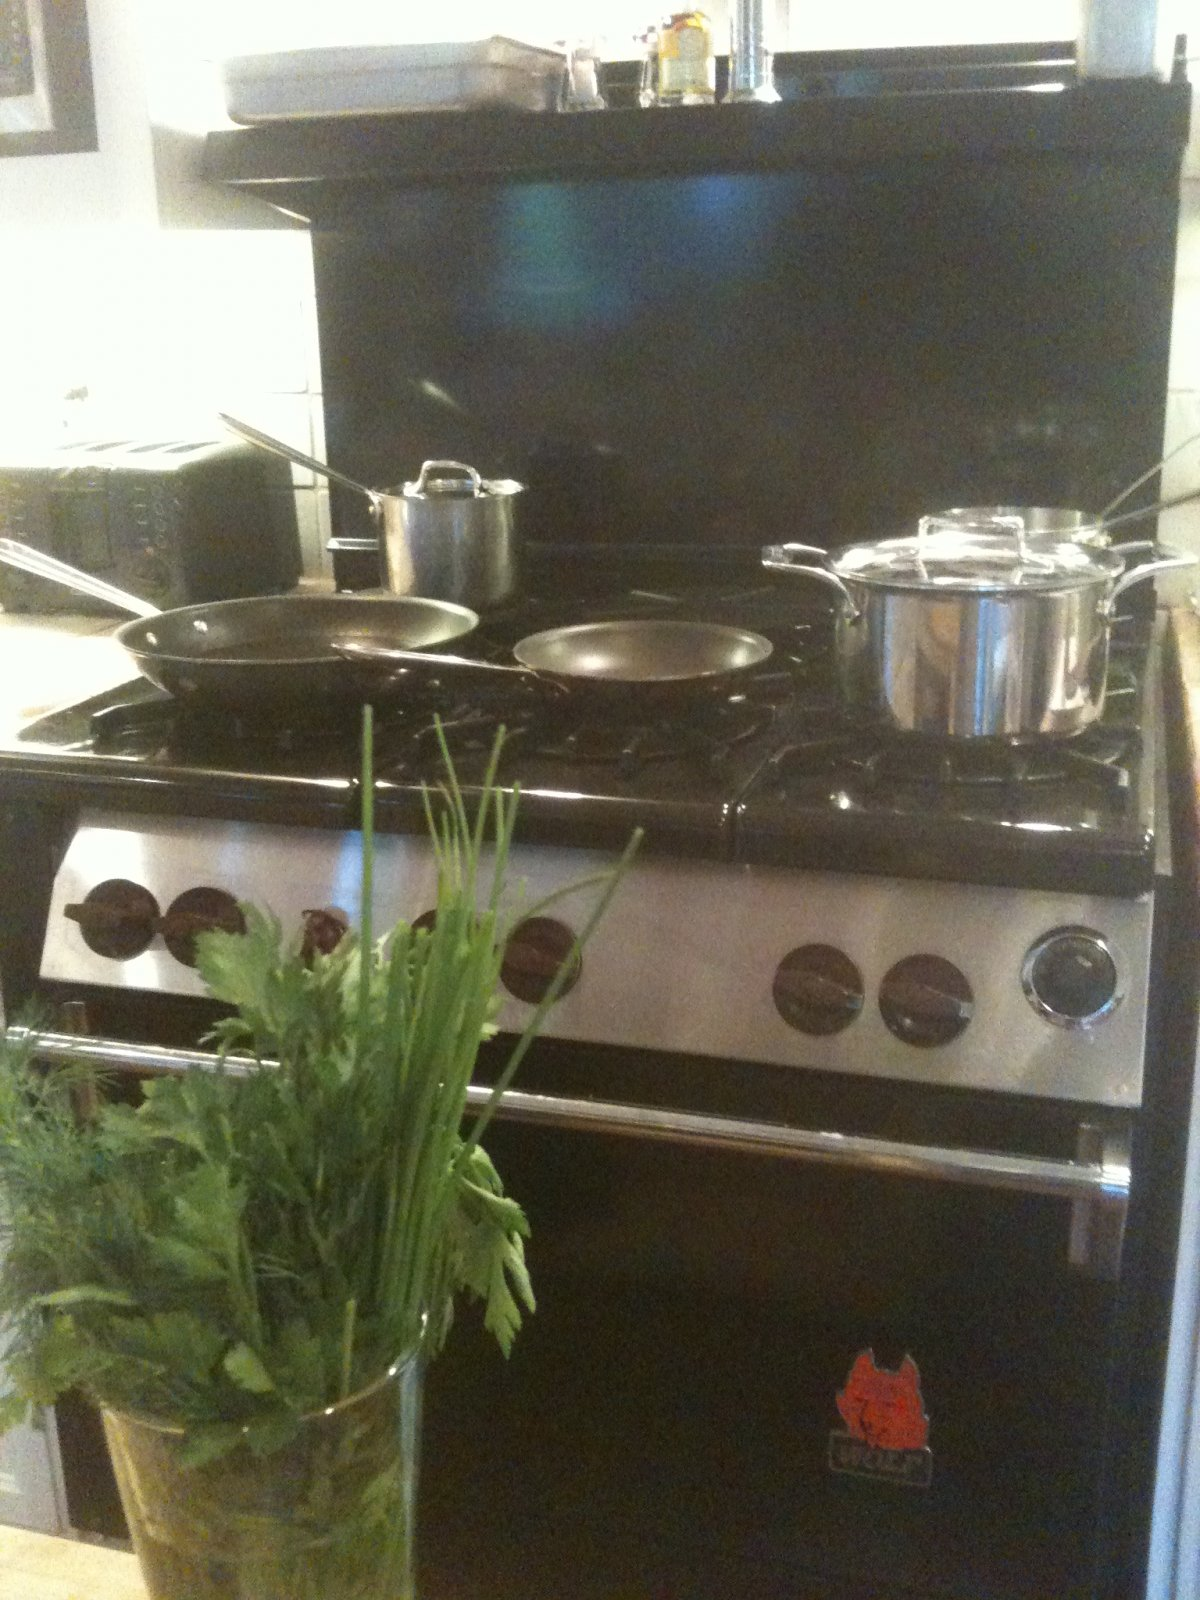 Click image for larger version  Name:Cookin' 092111.jpg Views:52 Size:296.9 KB ID:140836